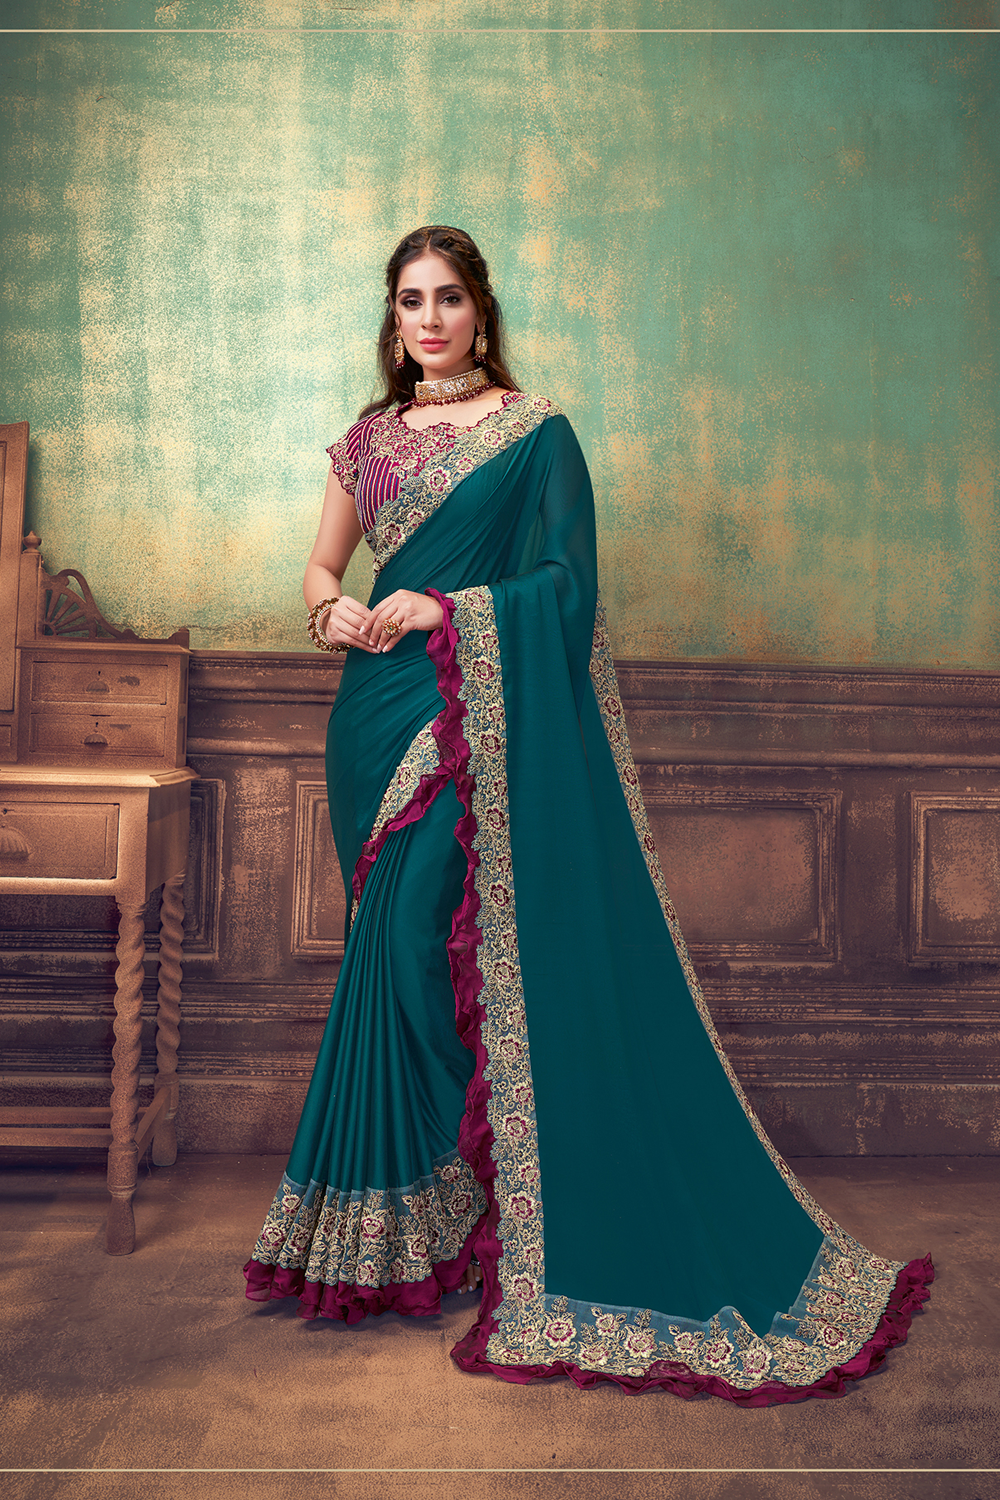 The future is simplicity and glamour combined with traditions  This deep jewel toned saree is with a contrasting wine resham and zari embroidery with prettiest frill additions this design is an apt pick for a women who wants her style to be unique wh